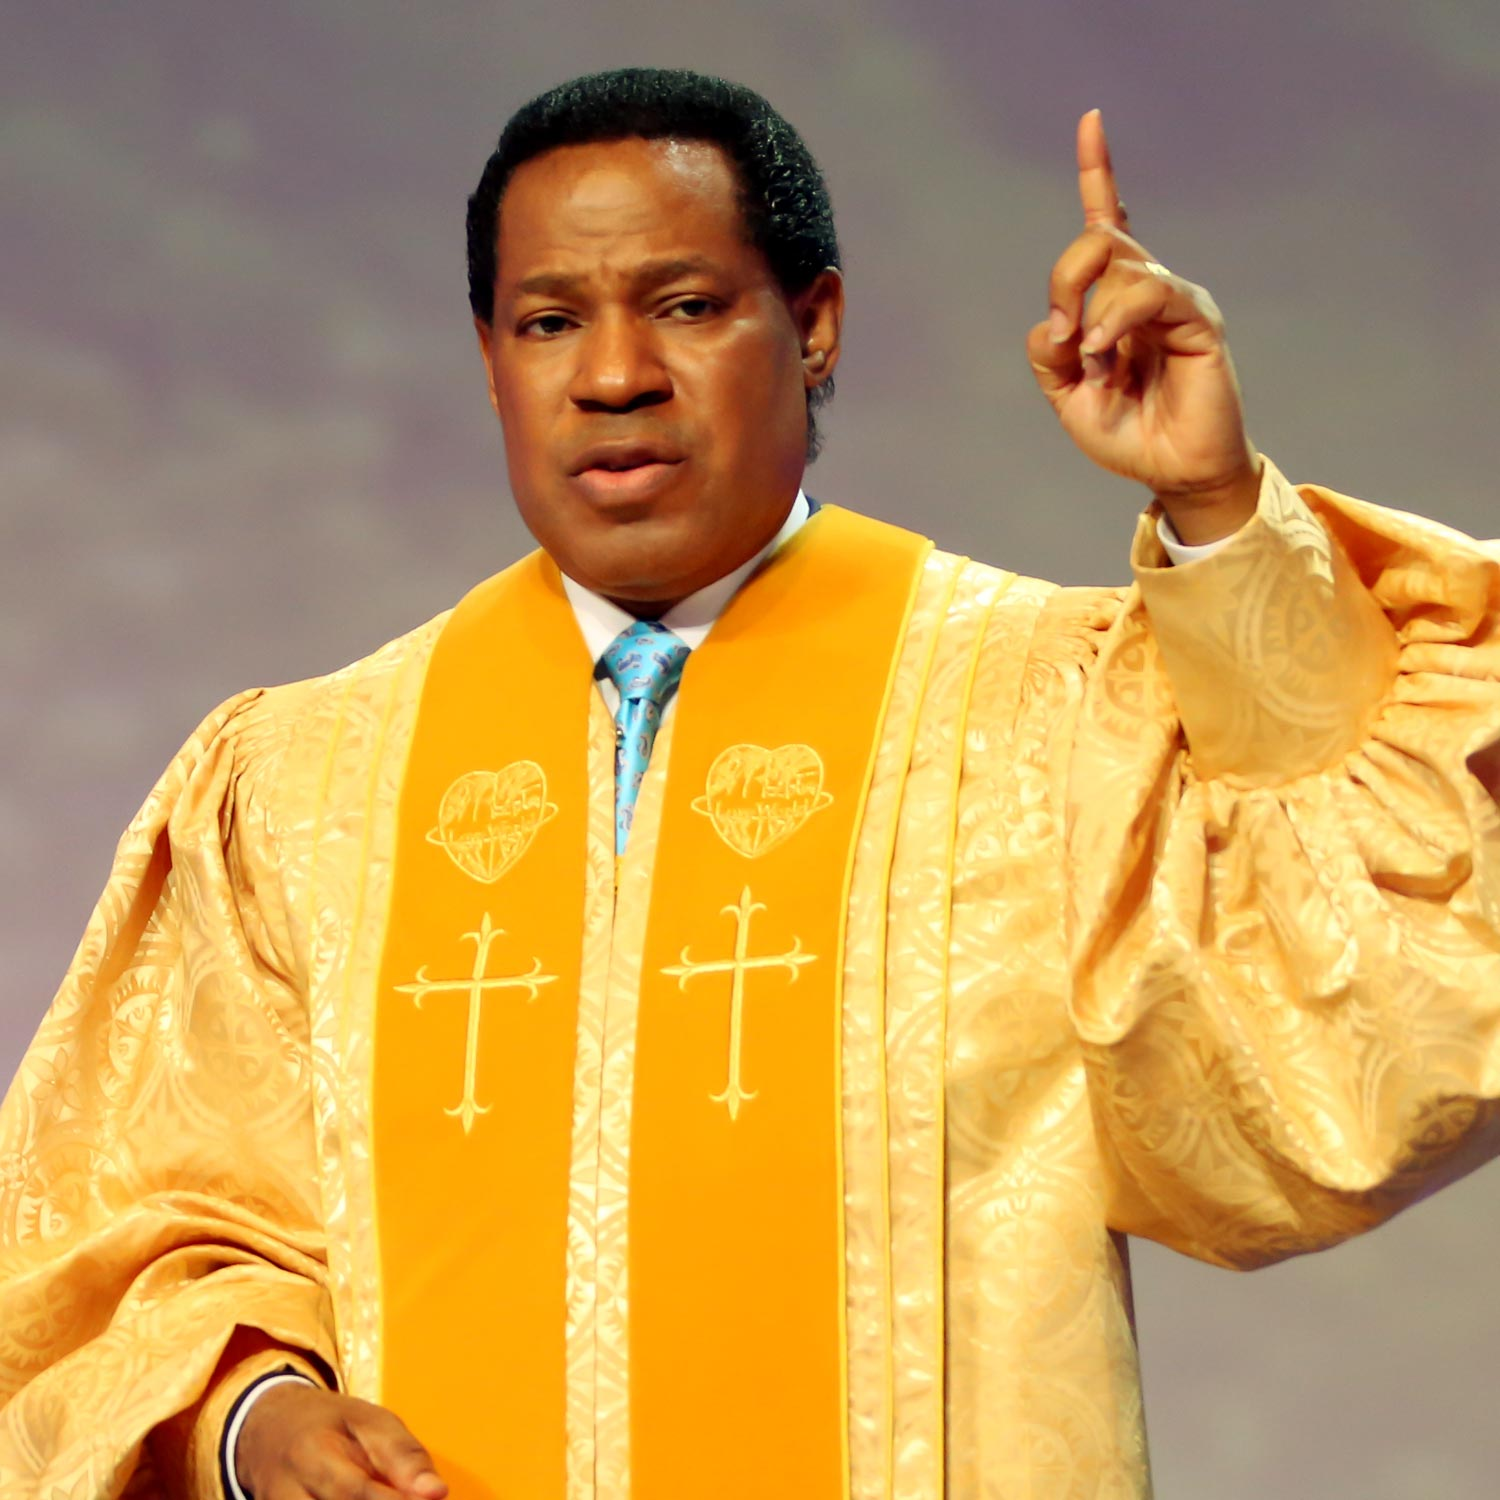 Rhapsody of Realities 24 July 2020 By Pastor Chris Oyakhilome (Christ Embassy) — Love Like He Did